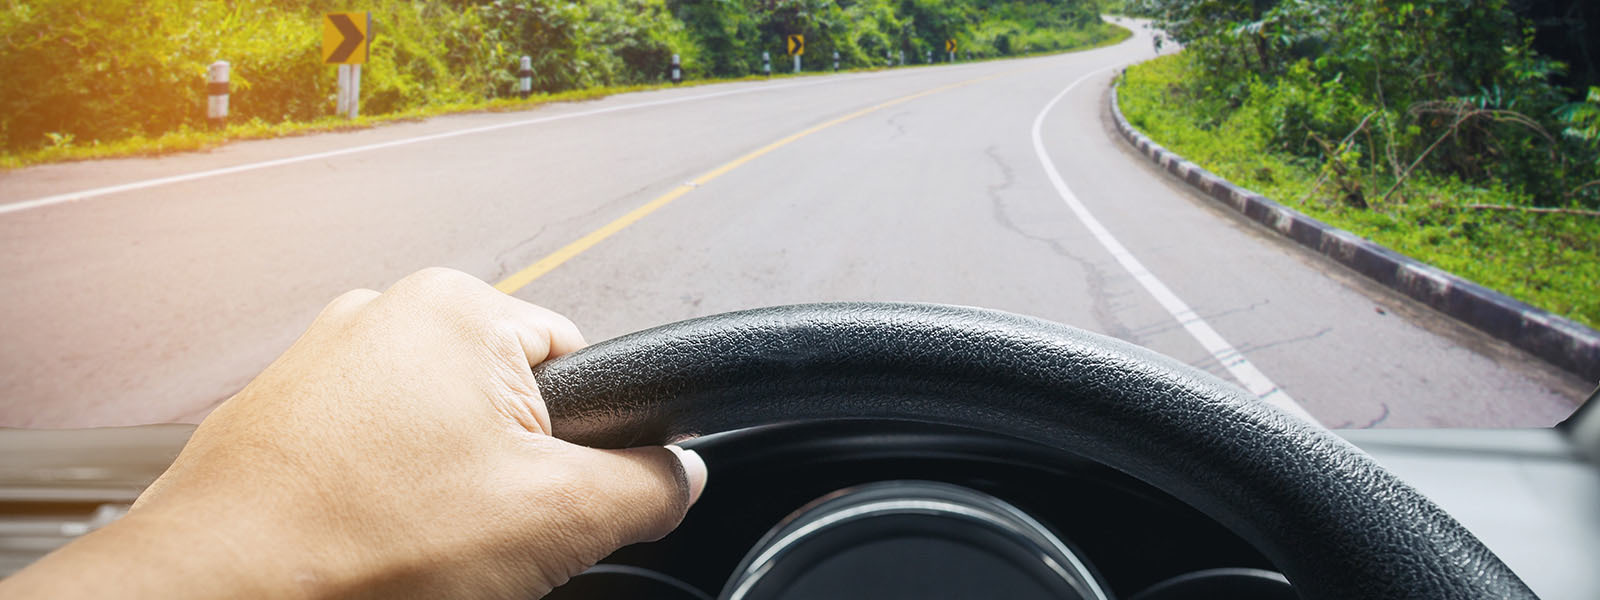 Image of person driving a car looking at a winding road lined with trees